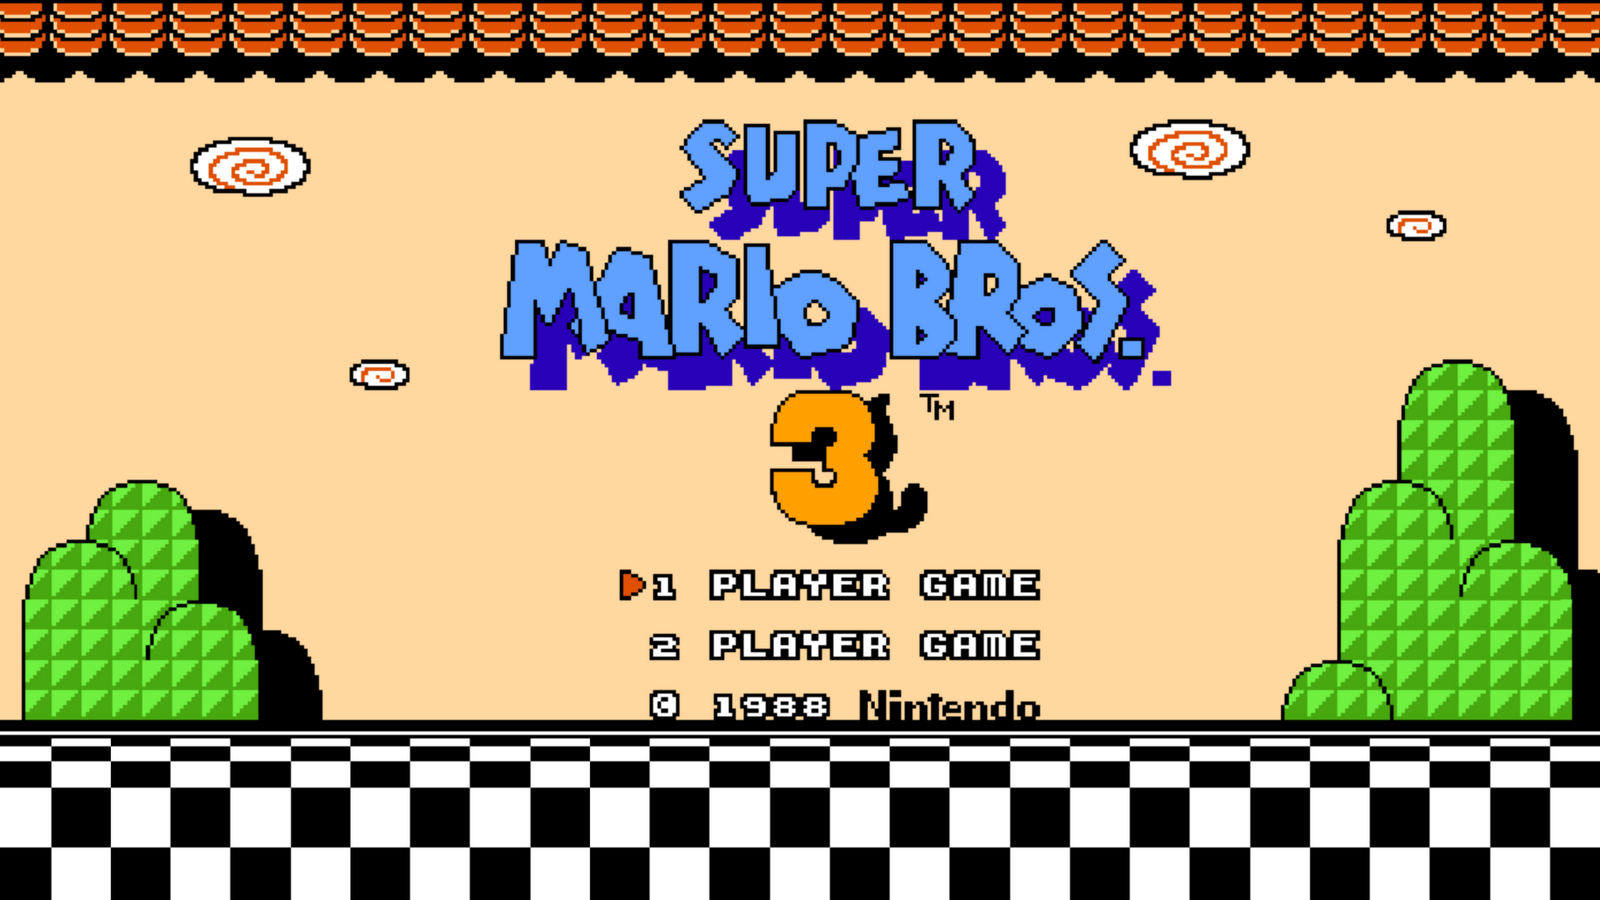 http://1.bp.blogspot.com/-ZA7AxRATO08/UF9r7MWk72I/AAAAAAAACPI/Jc3TYywxec8/s1600/Super+mario+brothers+bros+3+8-bit+wallpaper+start+screen.png